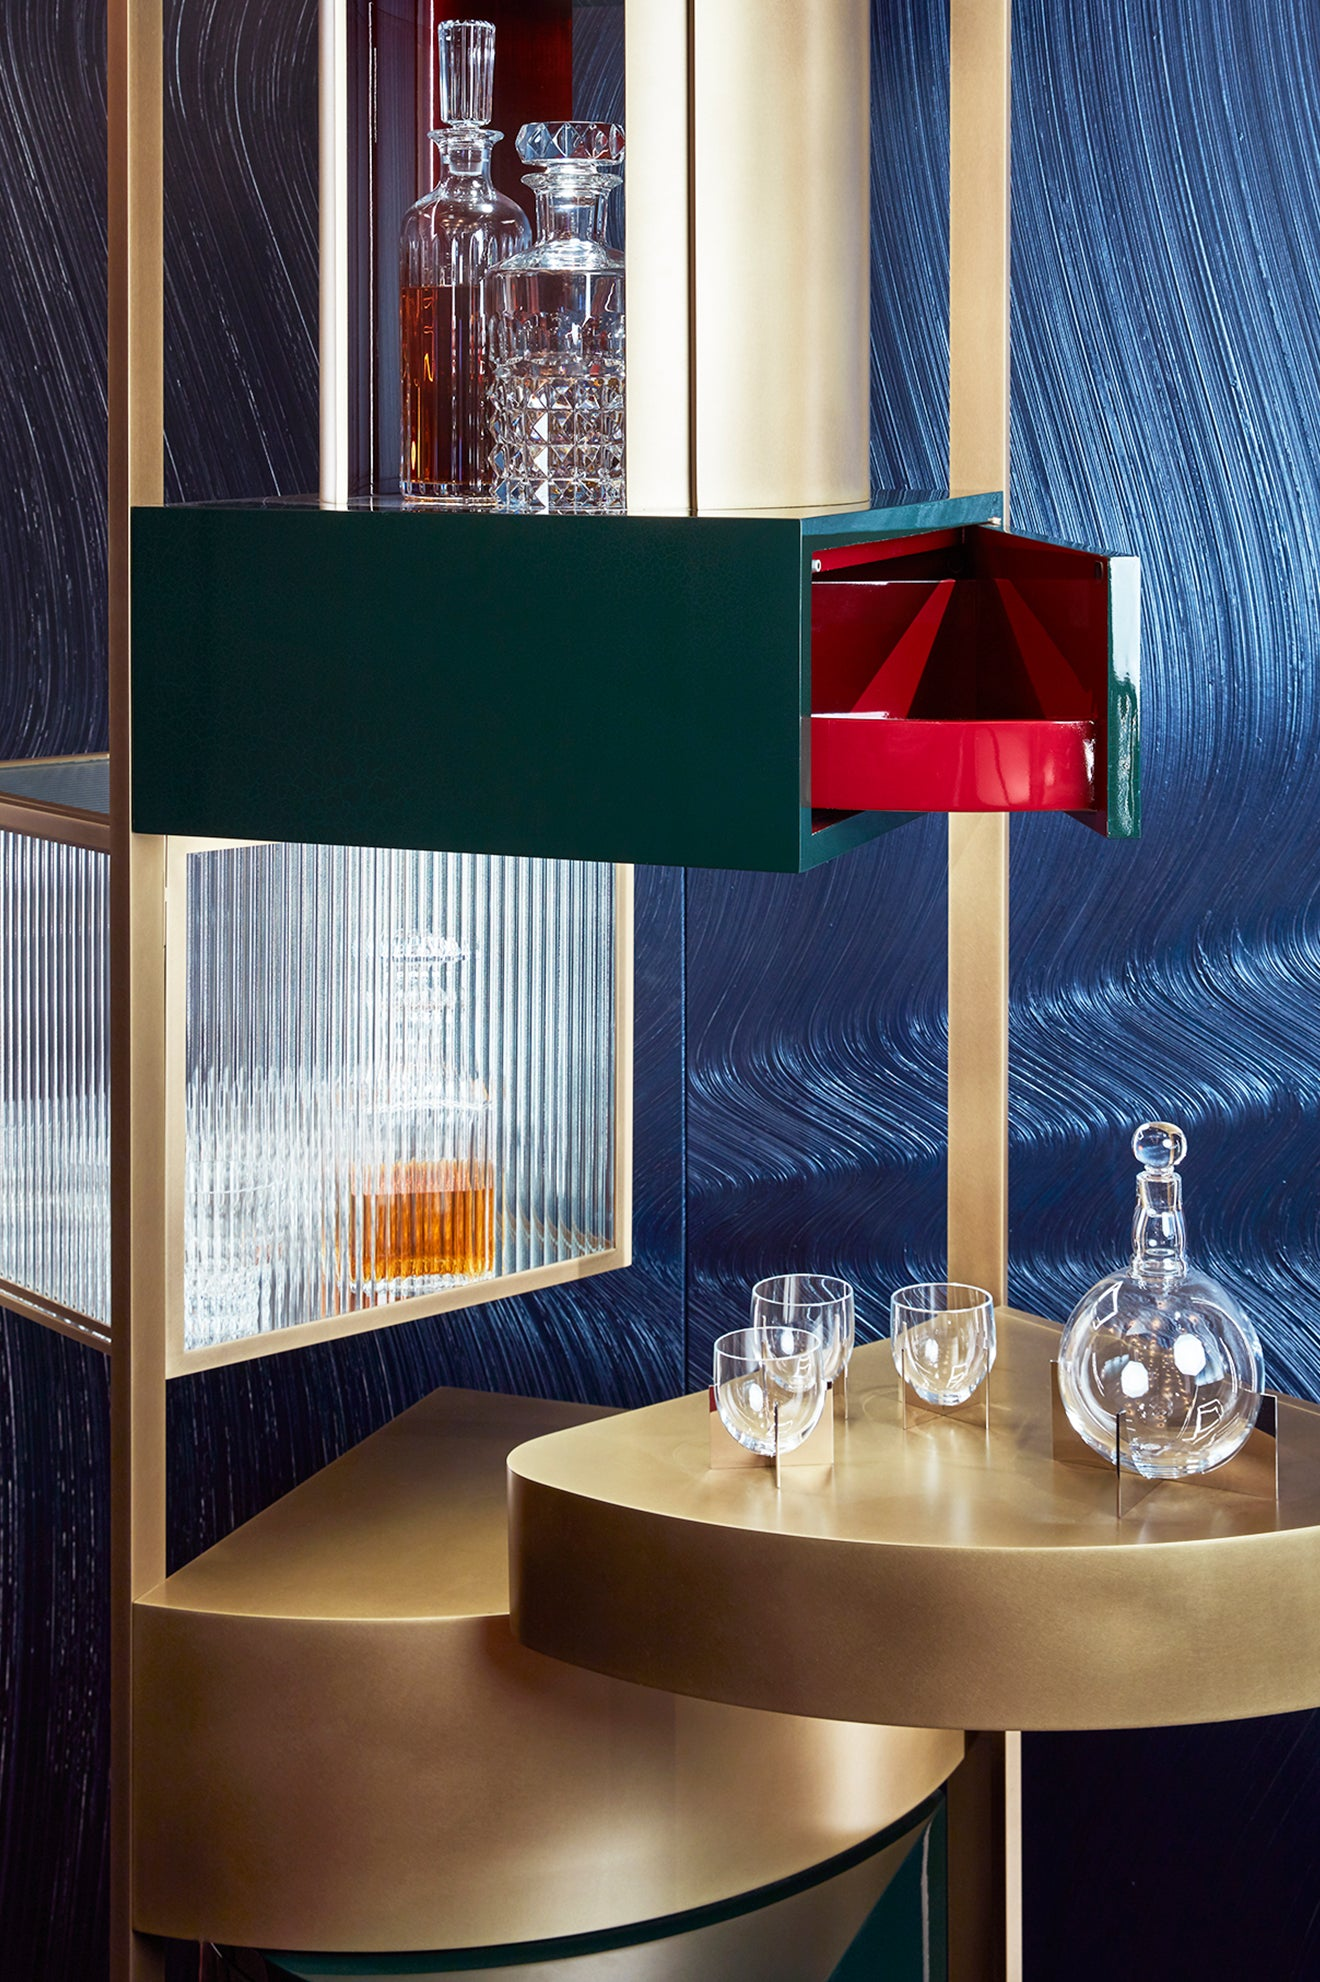 Humbert & Poyet Architecture design the Nocturnal Smoking Room for Maison et Objet